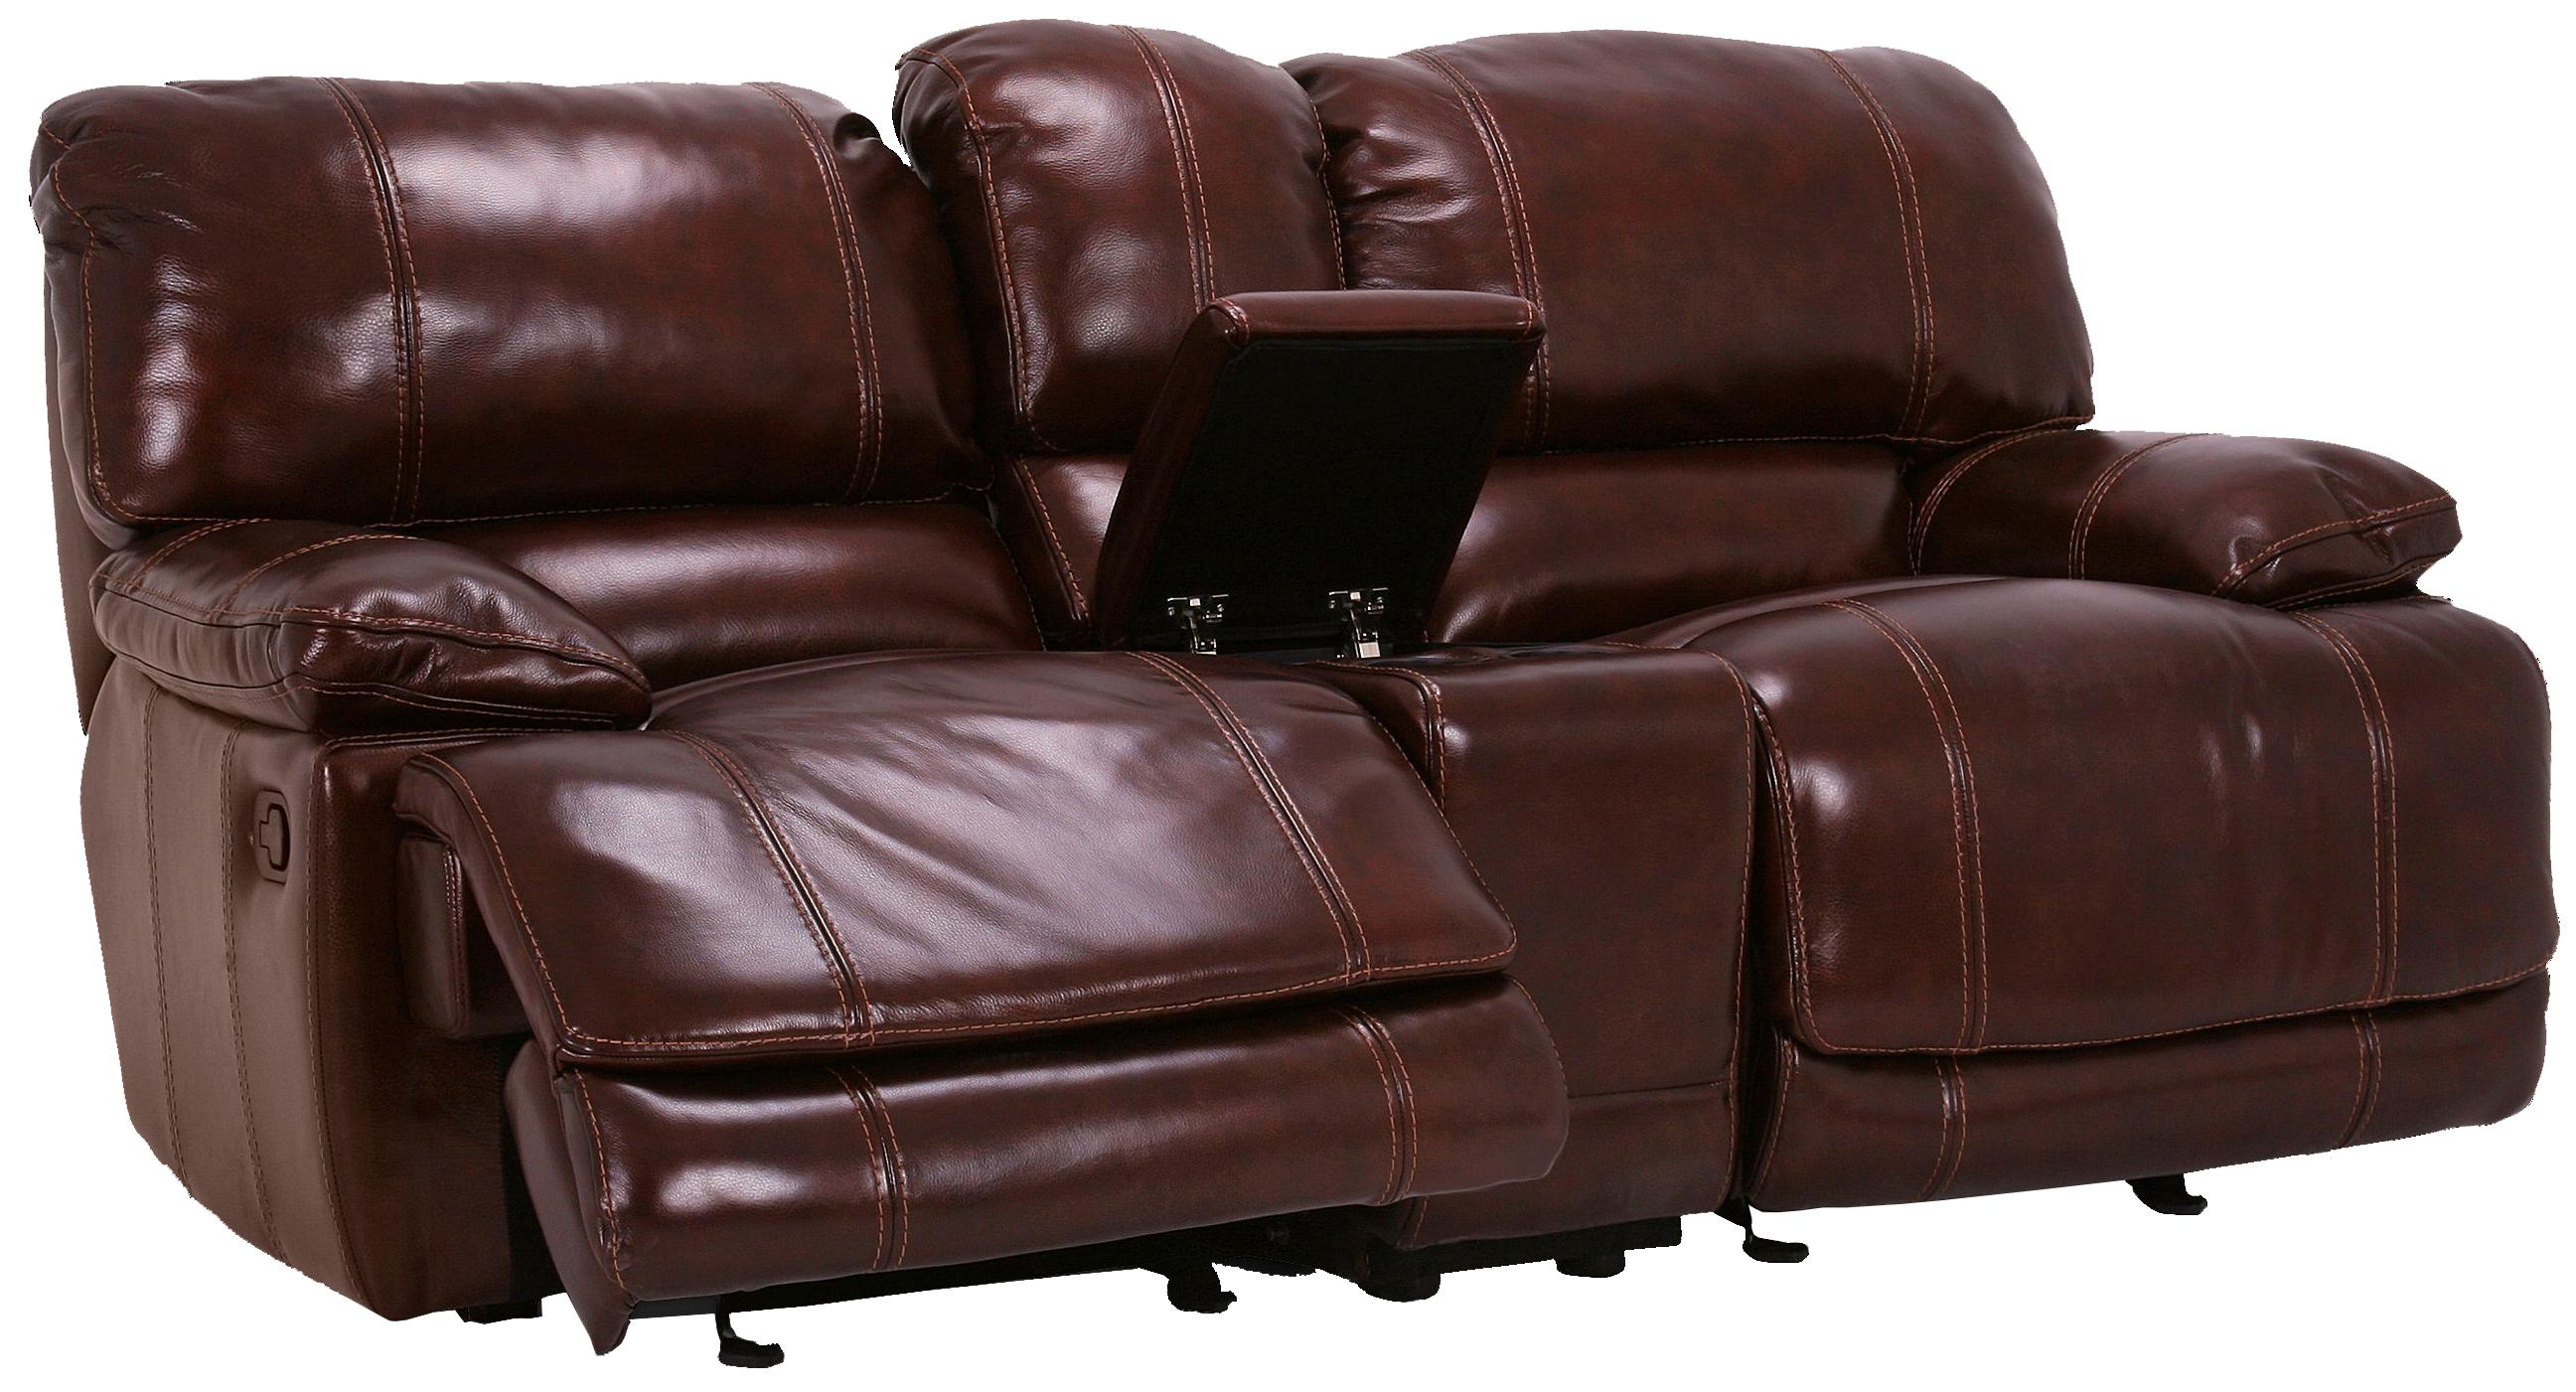 Flexsteel Latitudes - Belmont Gliding Reclining Love Seat with Console - Item Number: 1250-604